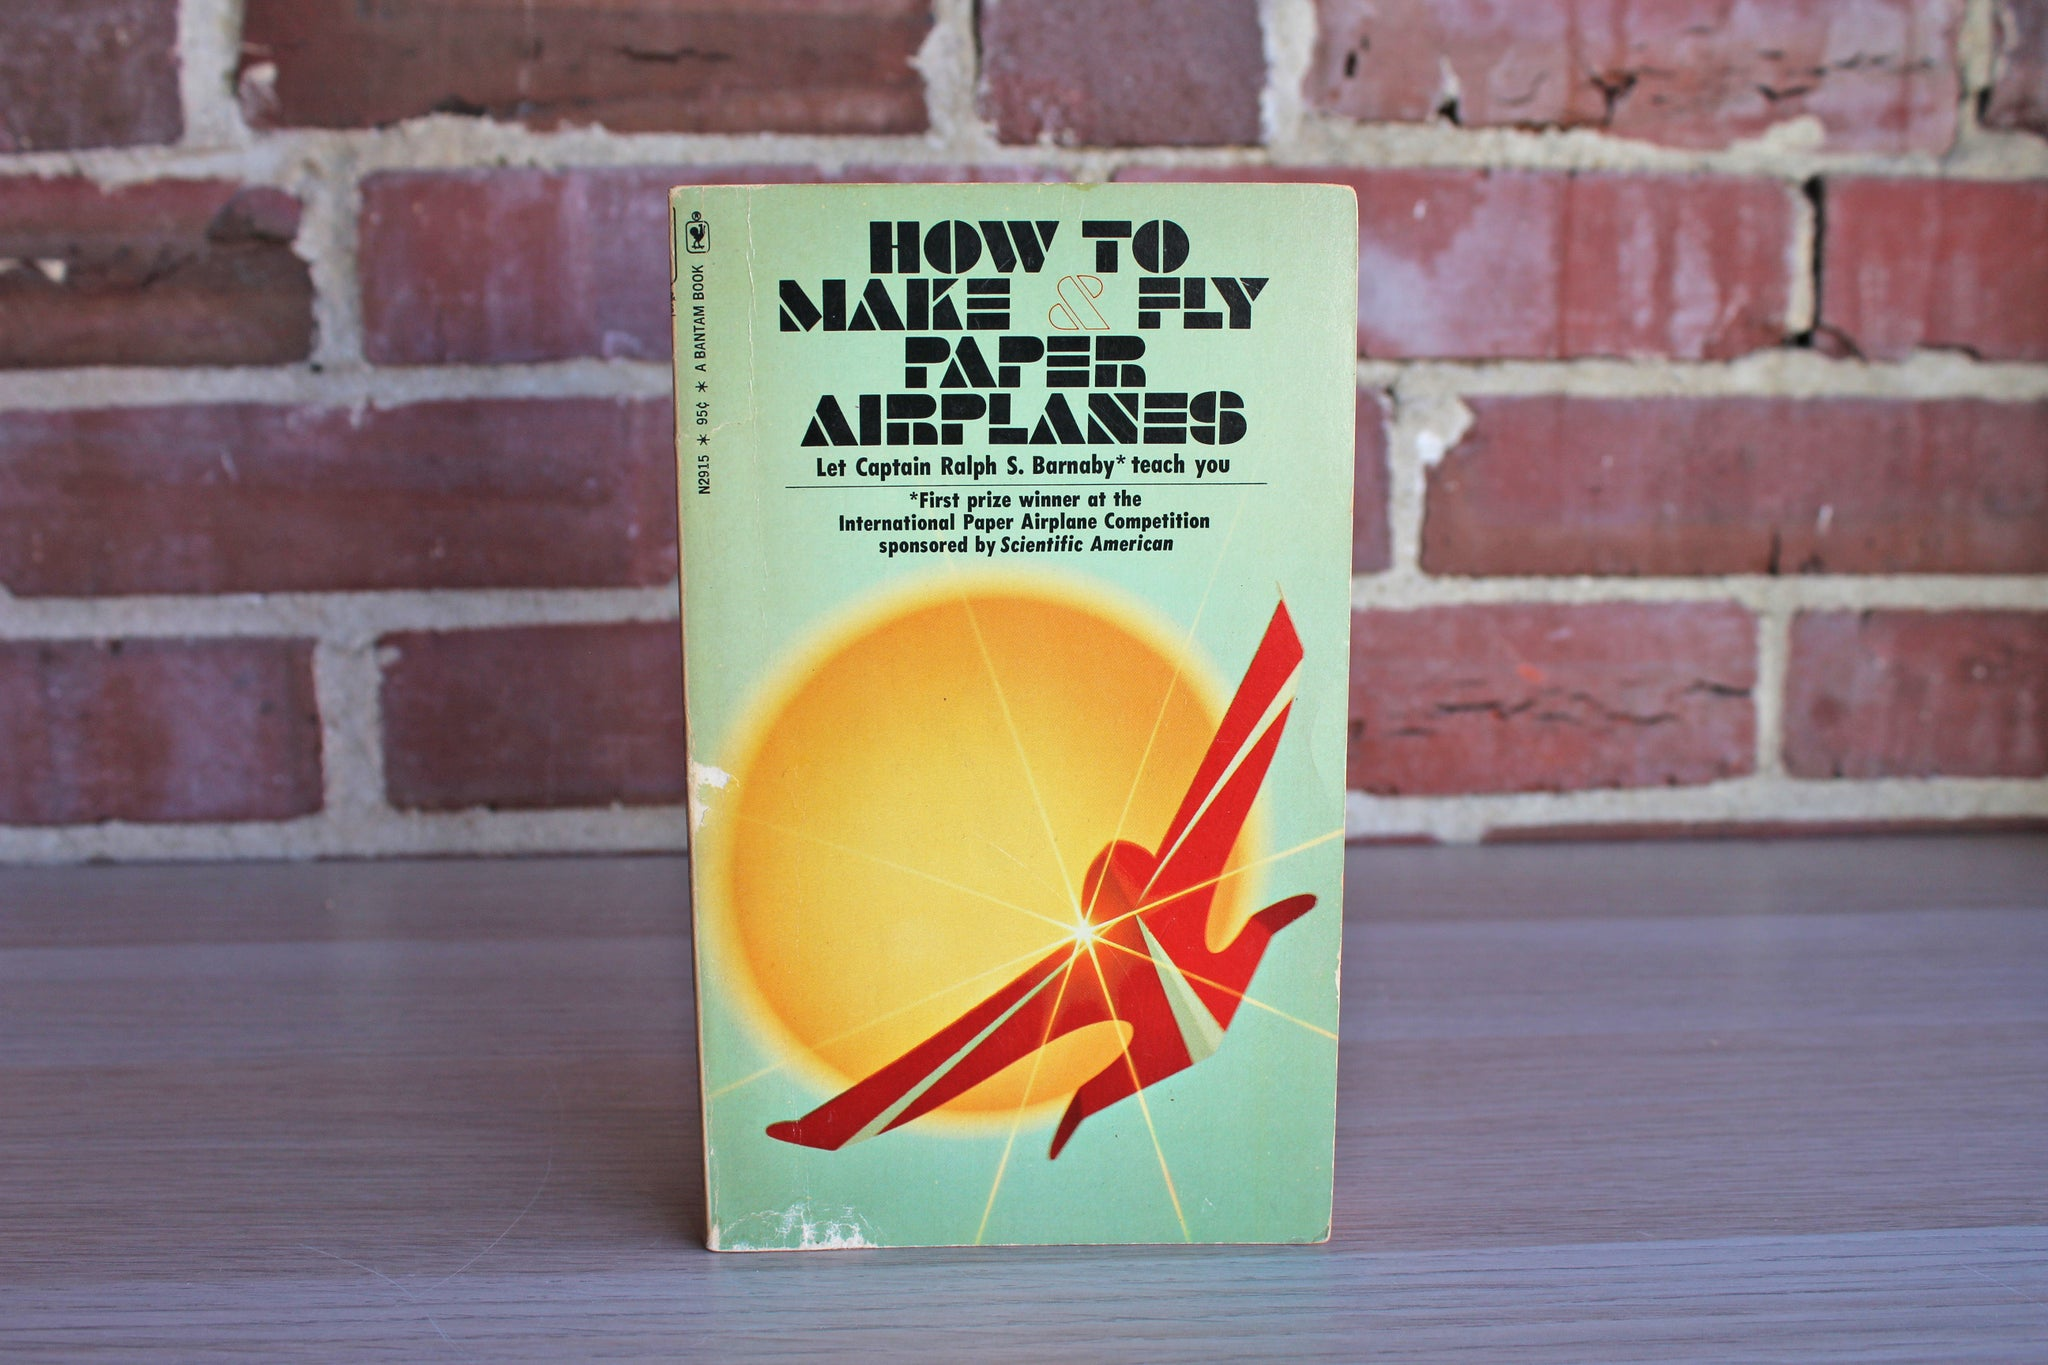 How to Make & Fly Paper Airplanes by Captain Ronald S. Barnaby (U.S. Navy, Retired)